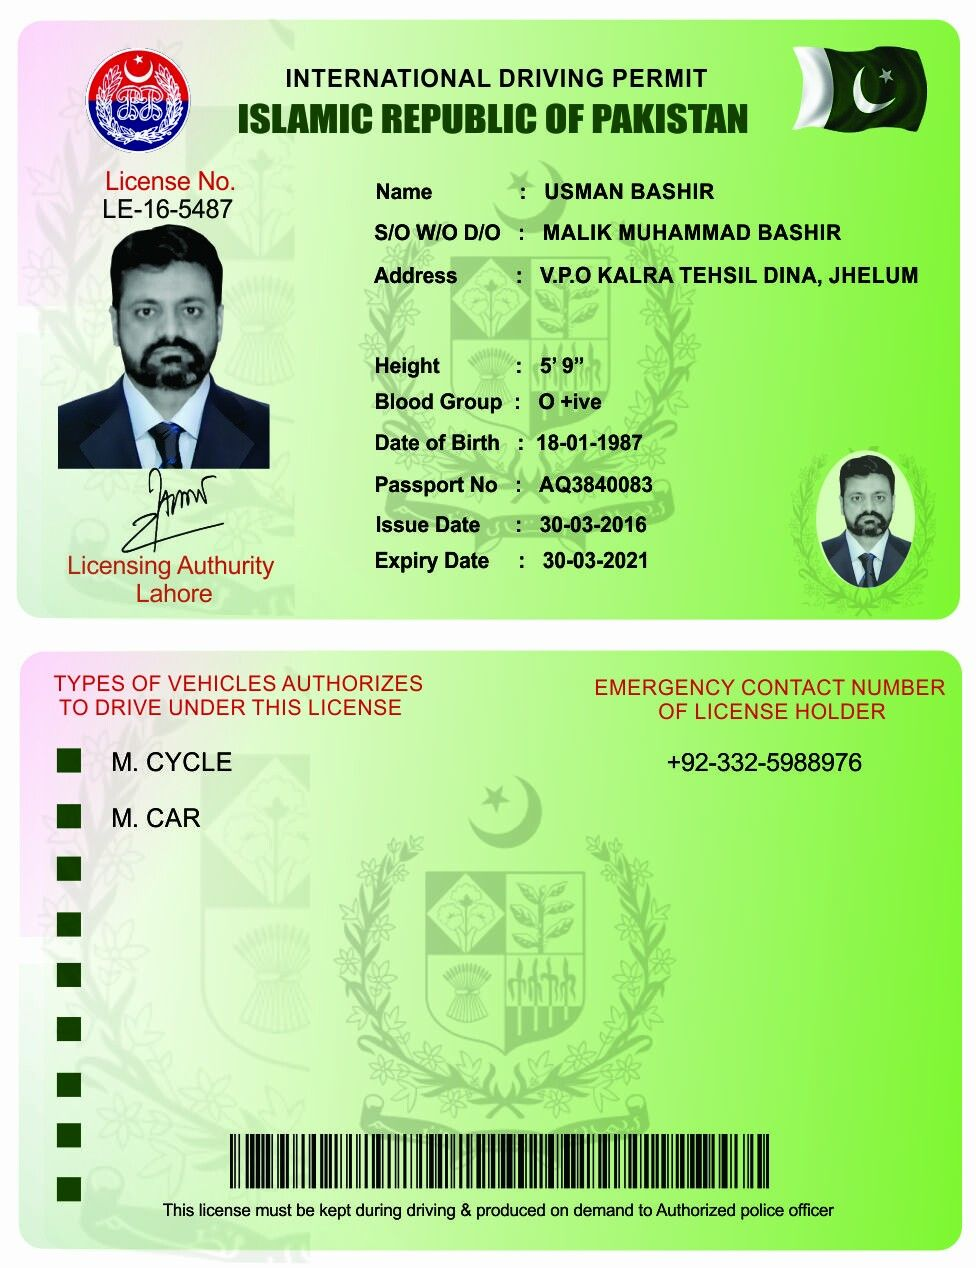 Get Your International Driving License Now At Your Door Step Only